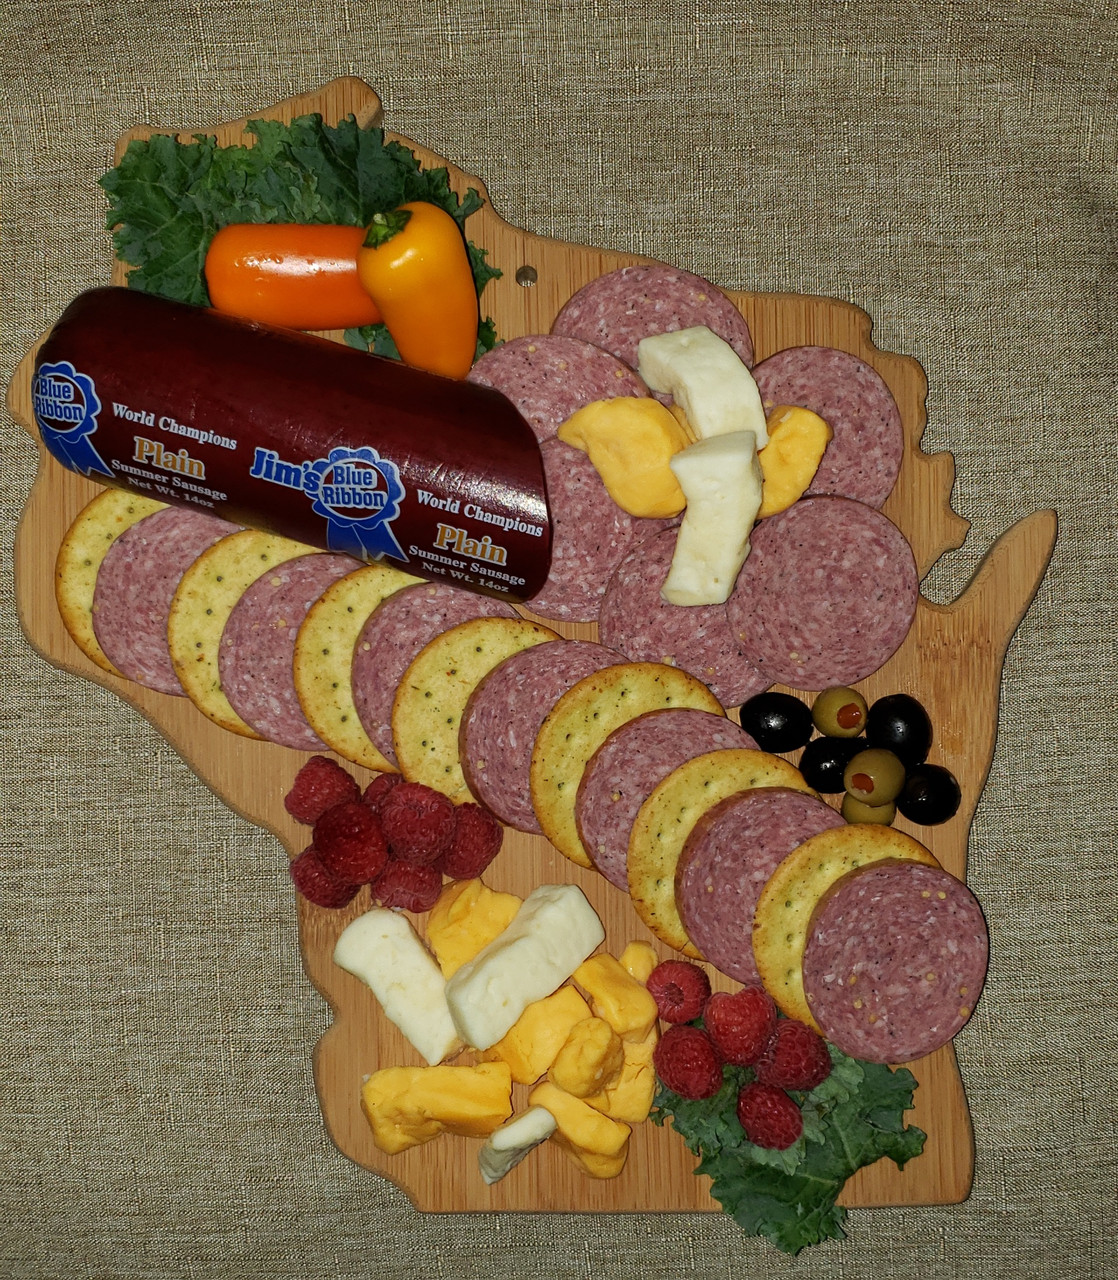 Enjoy with your favorite cheese and crackers.